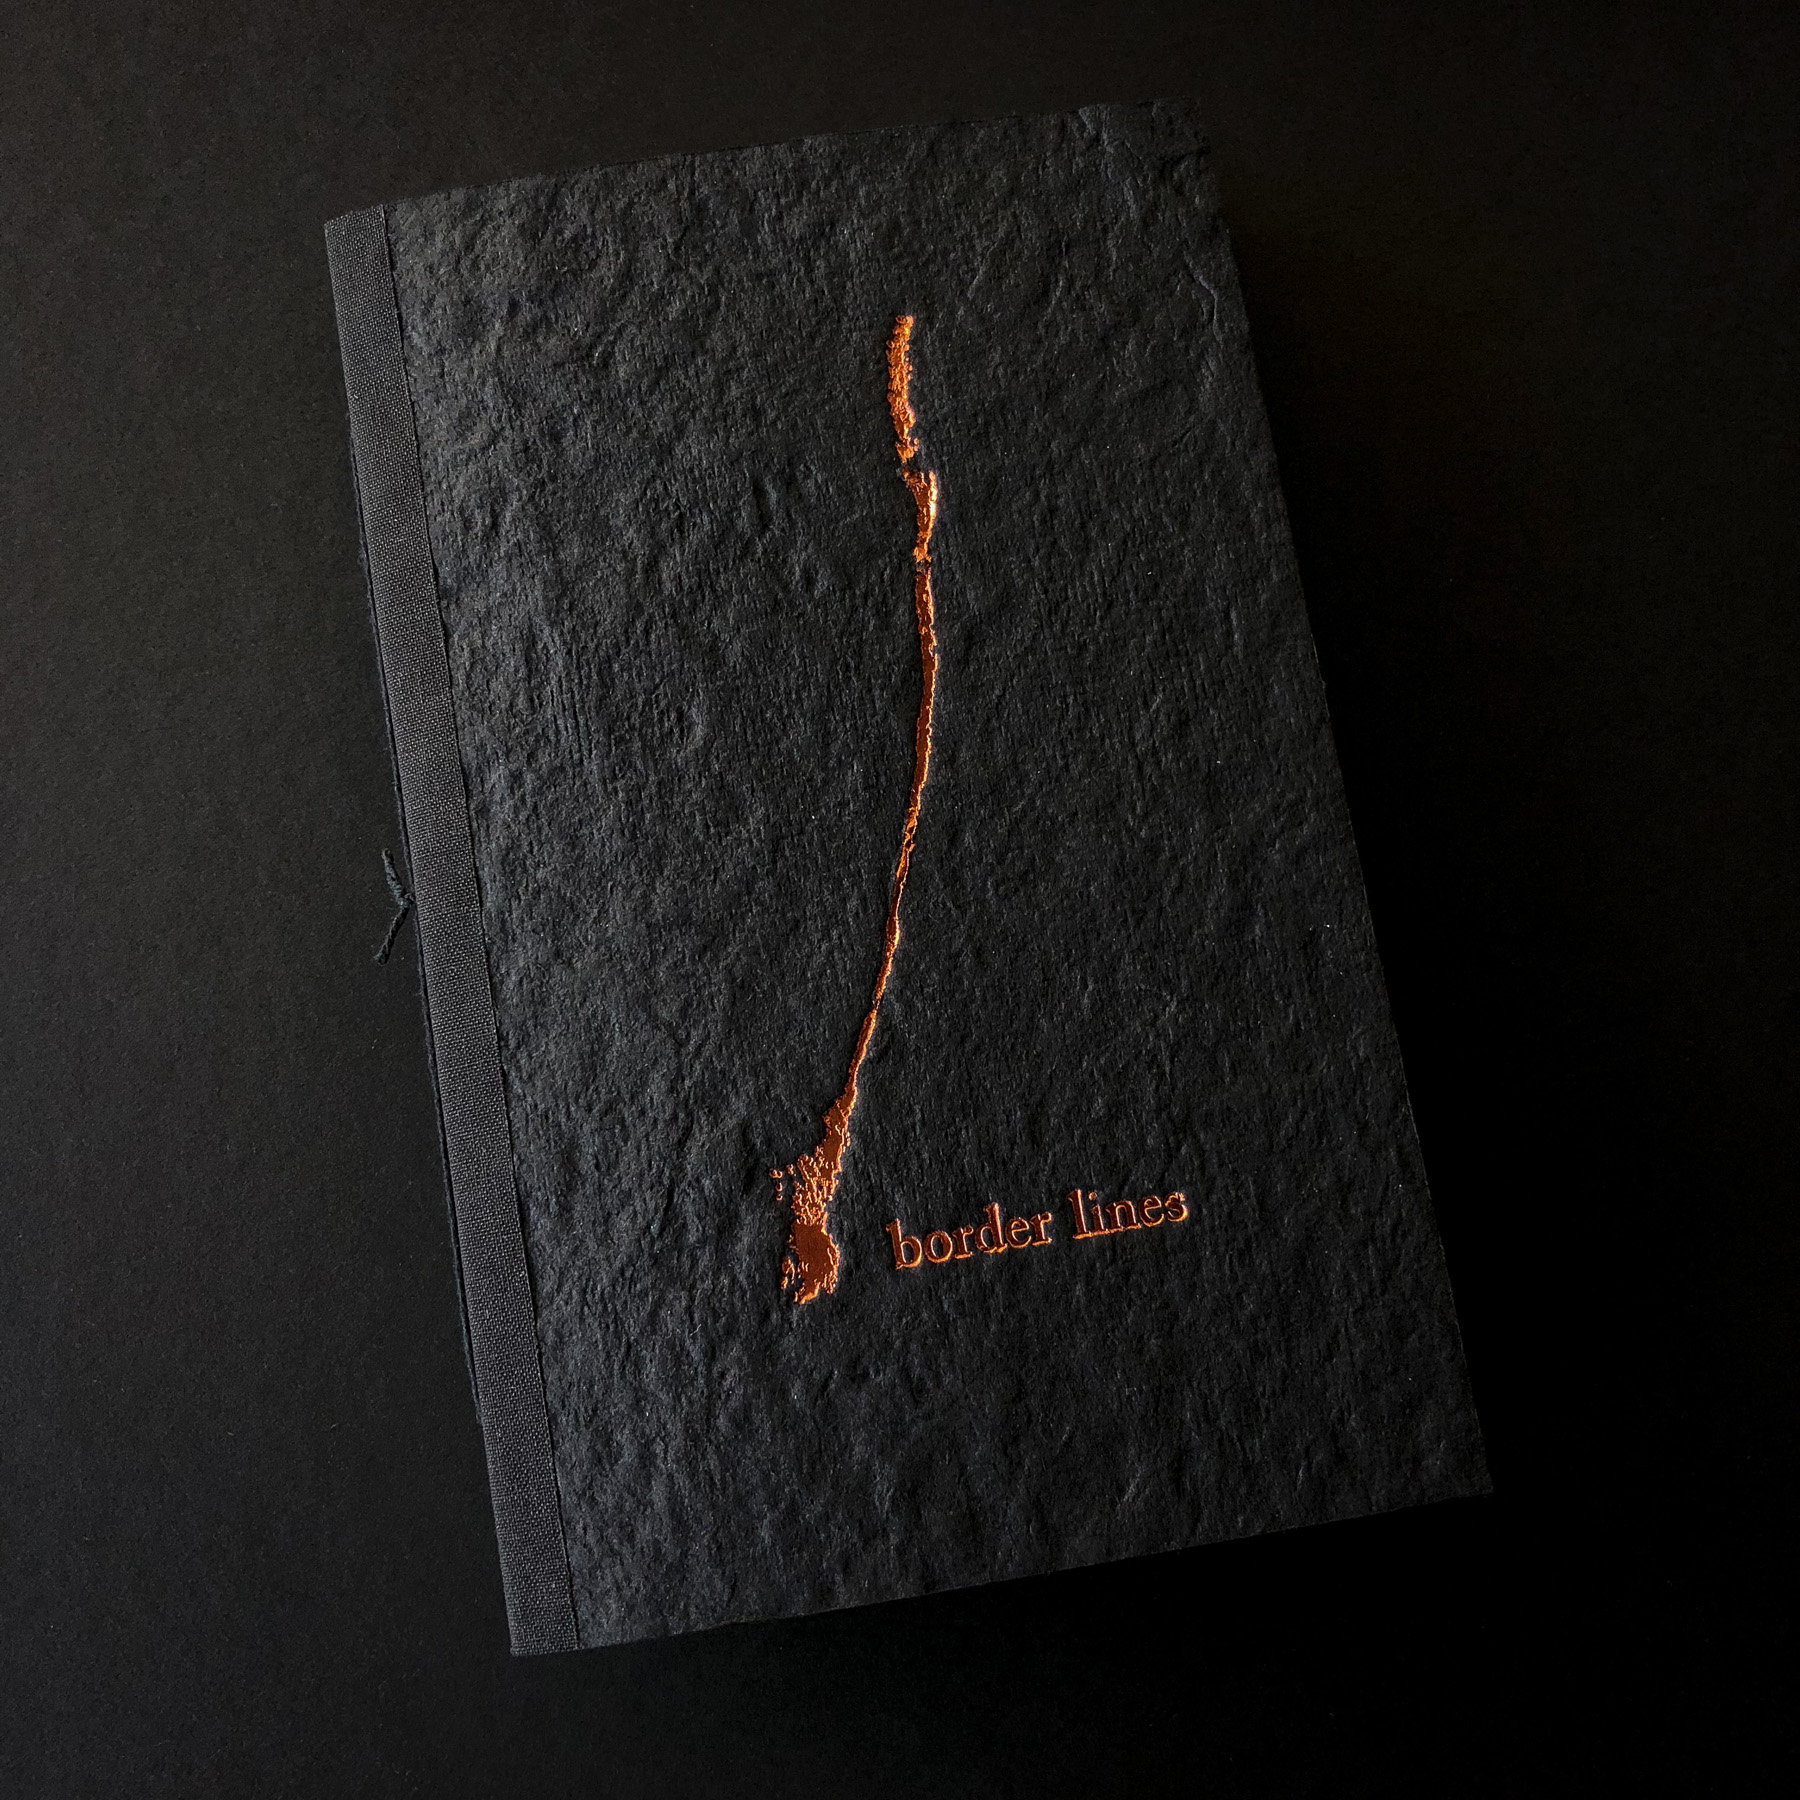 Copper foil stamped book by Lloyd Jones on handmade paper cover 2